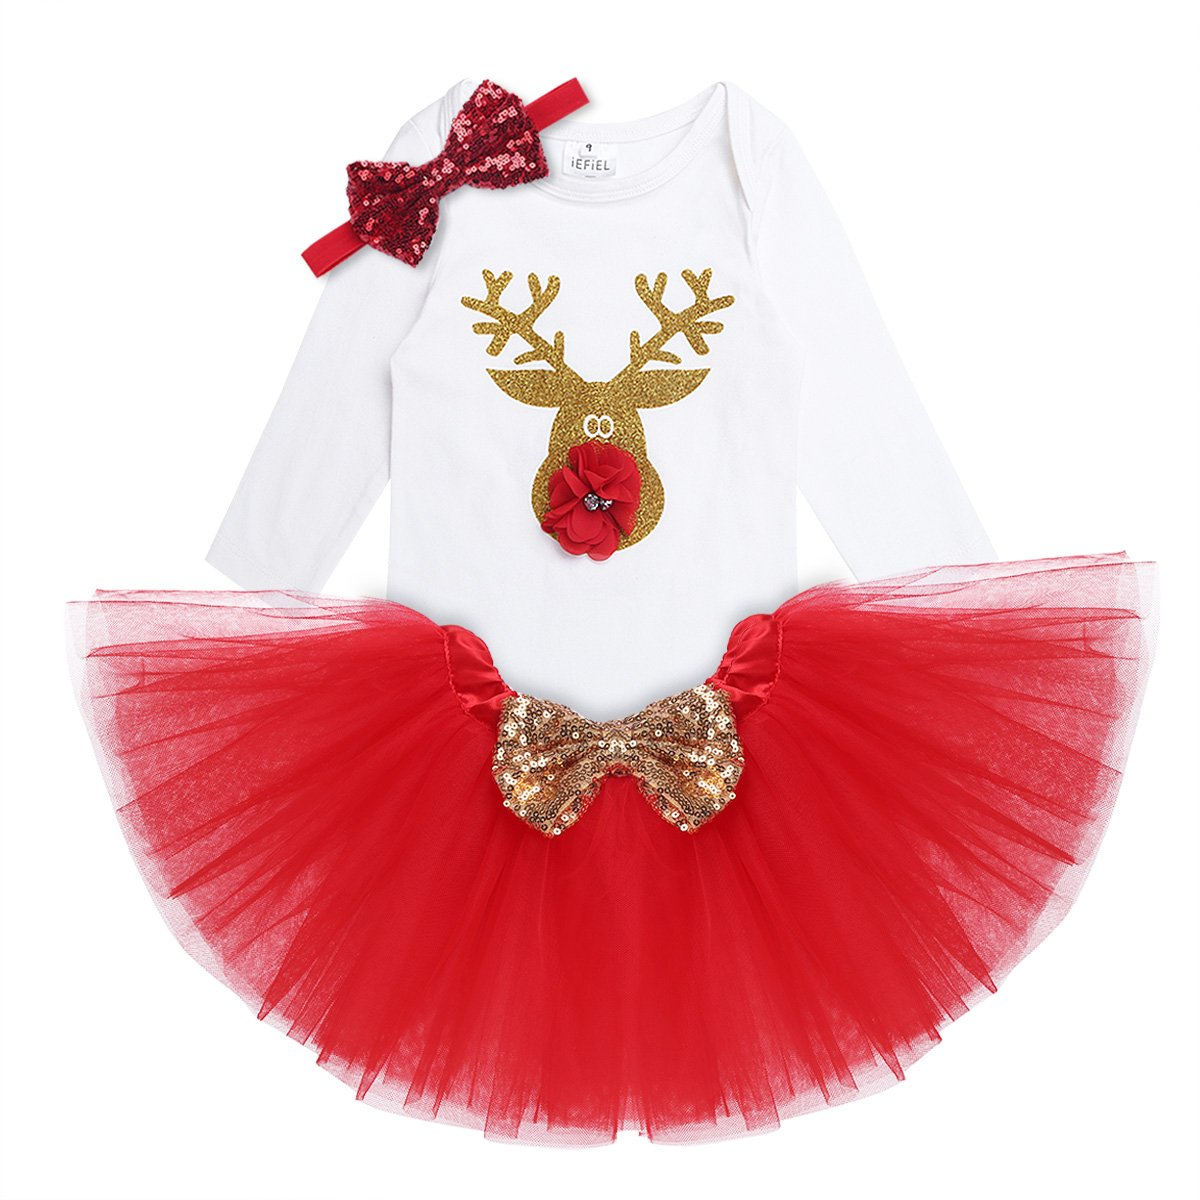 Christmas Tutu Outfits.Iiniim Baby Girls First Christmas Outfit Costumes Tutu Romper With Headband Leg Warmer Shoes Set